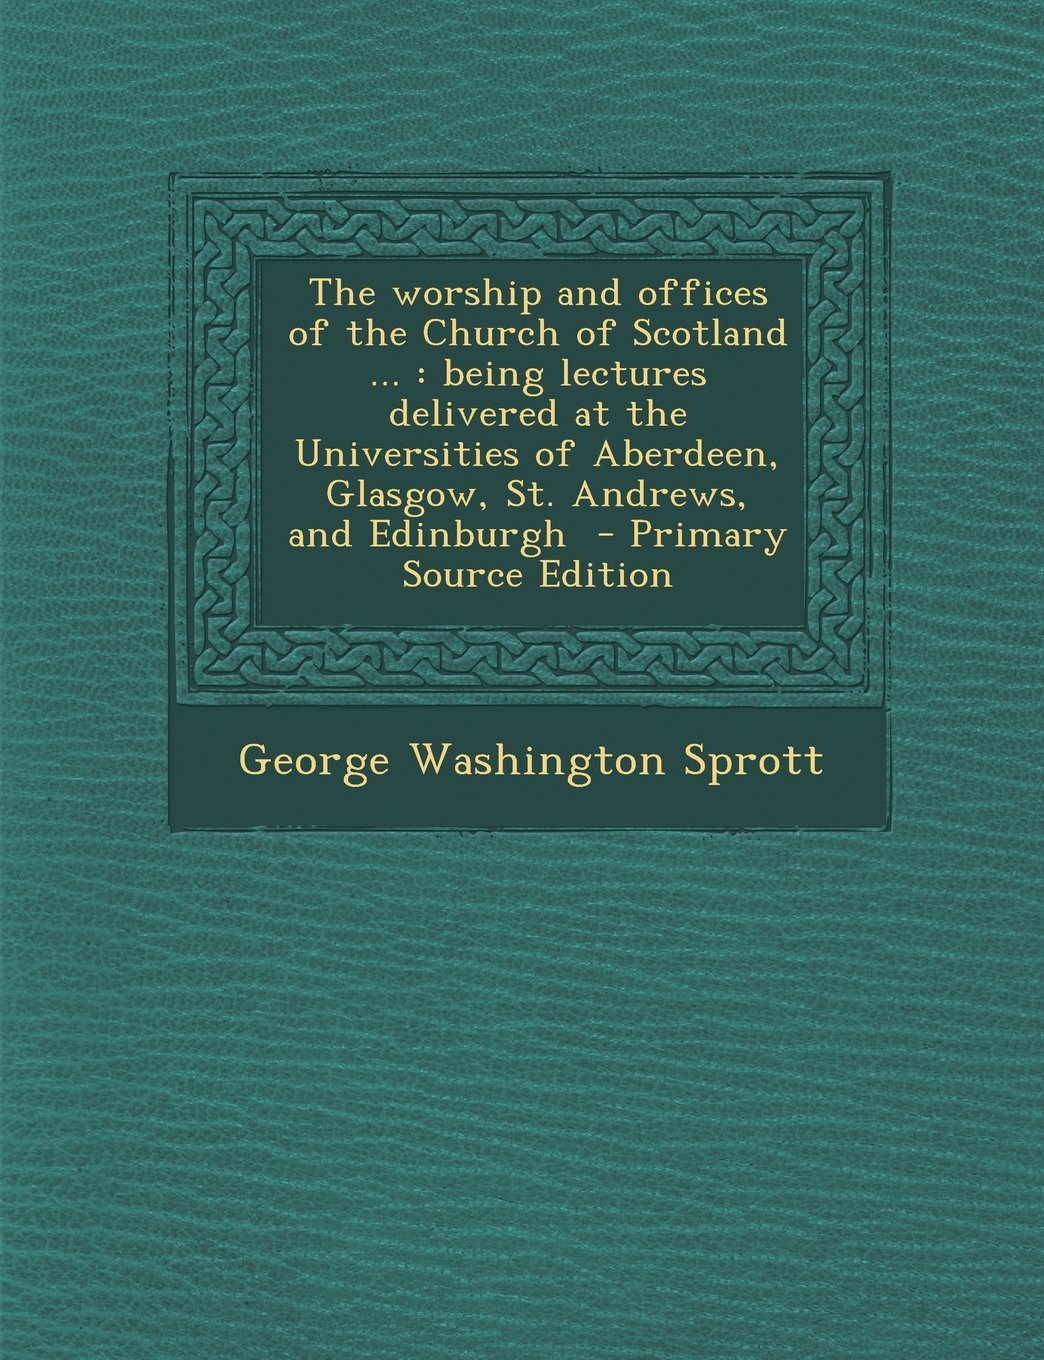 The Worship and Offices of the Church of Scotland ...: Being Lectures Delivered at the Universities of Aberdeen, Glasgow, St. Andrews, and Edinburgh - pdf